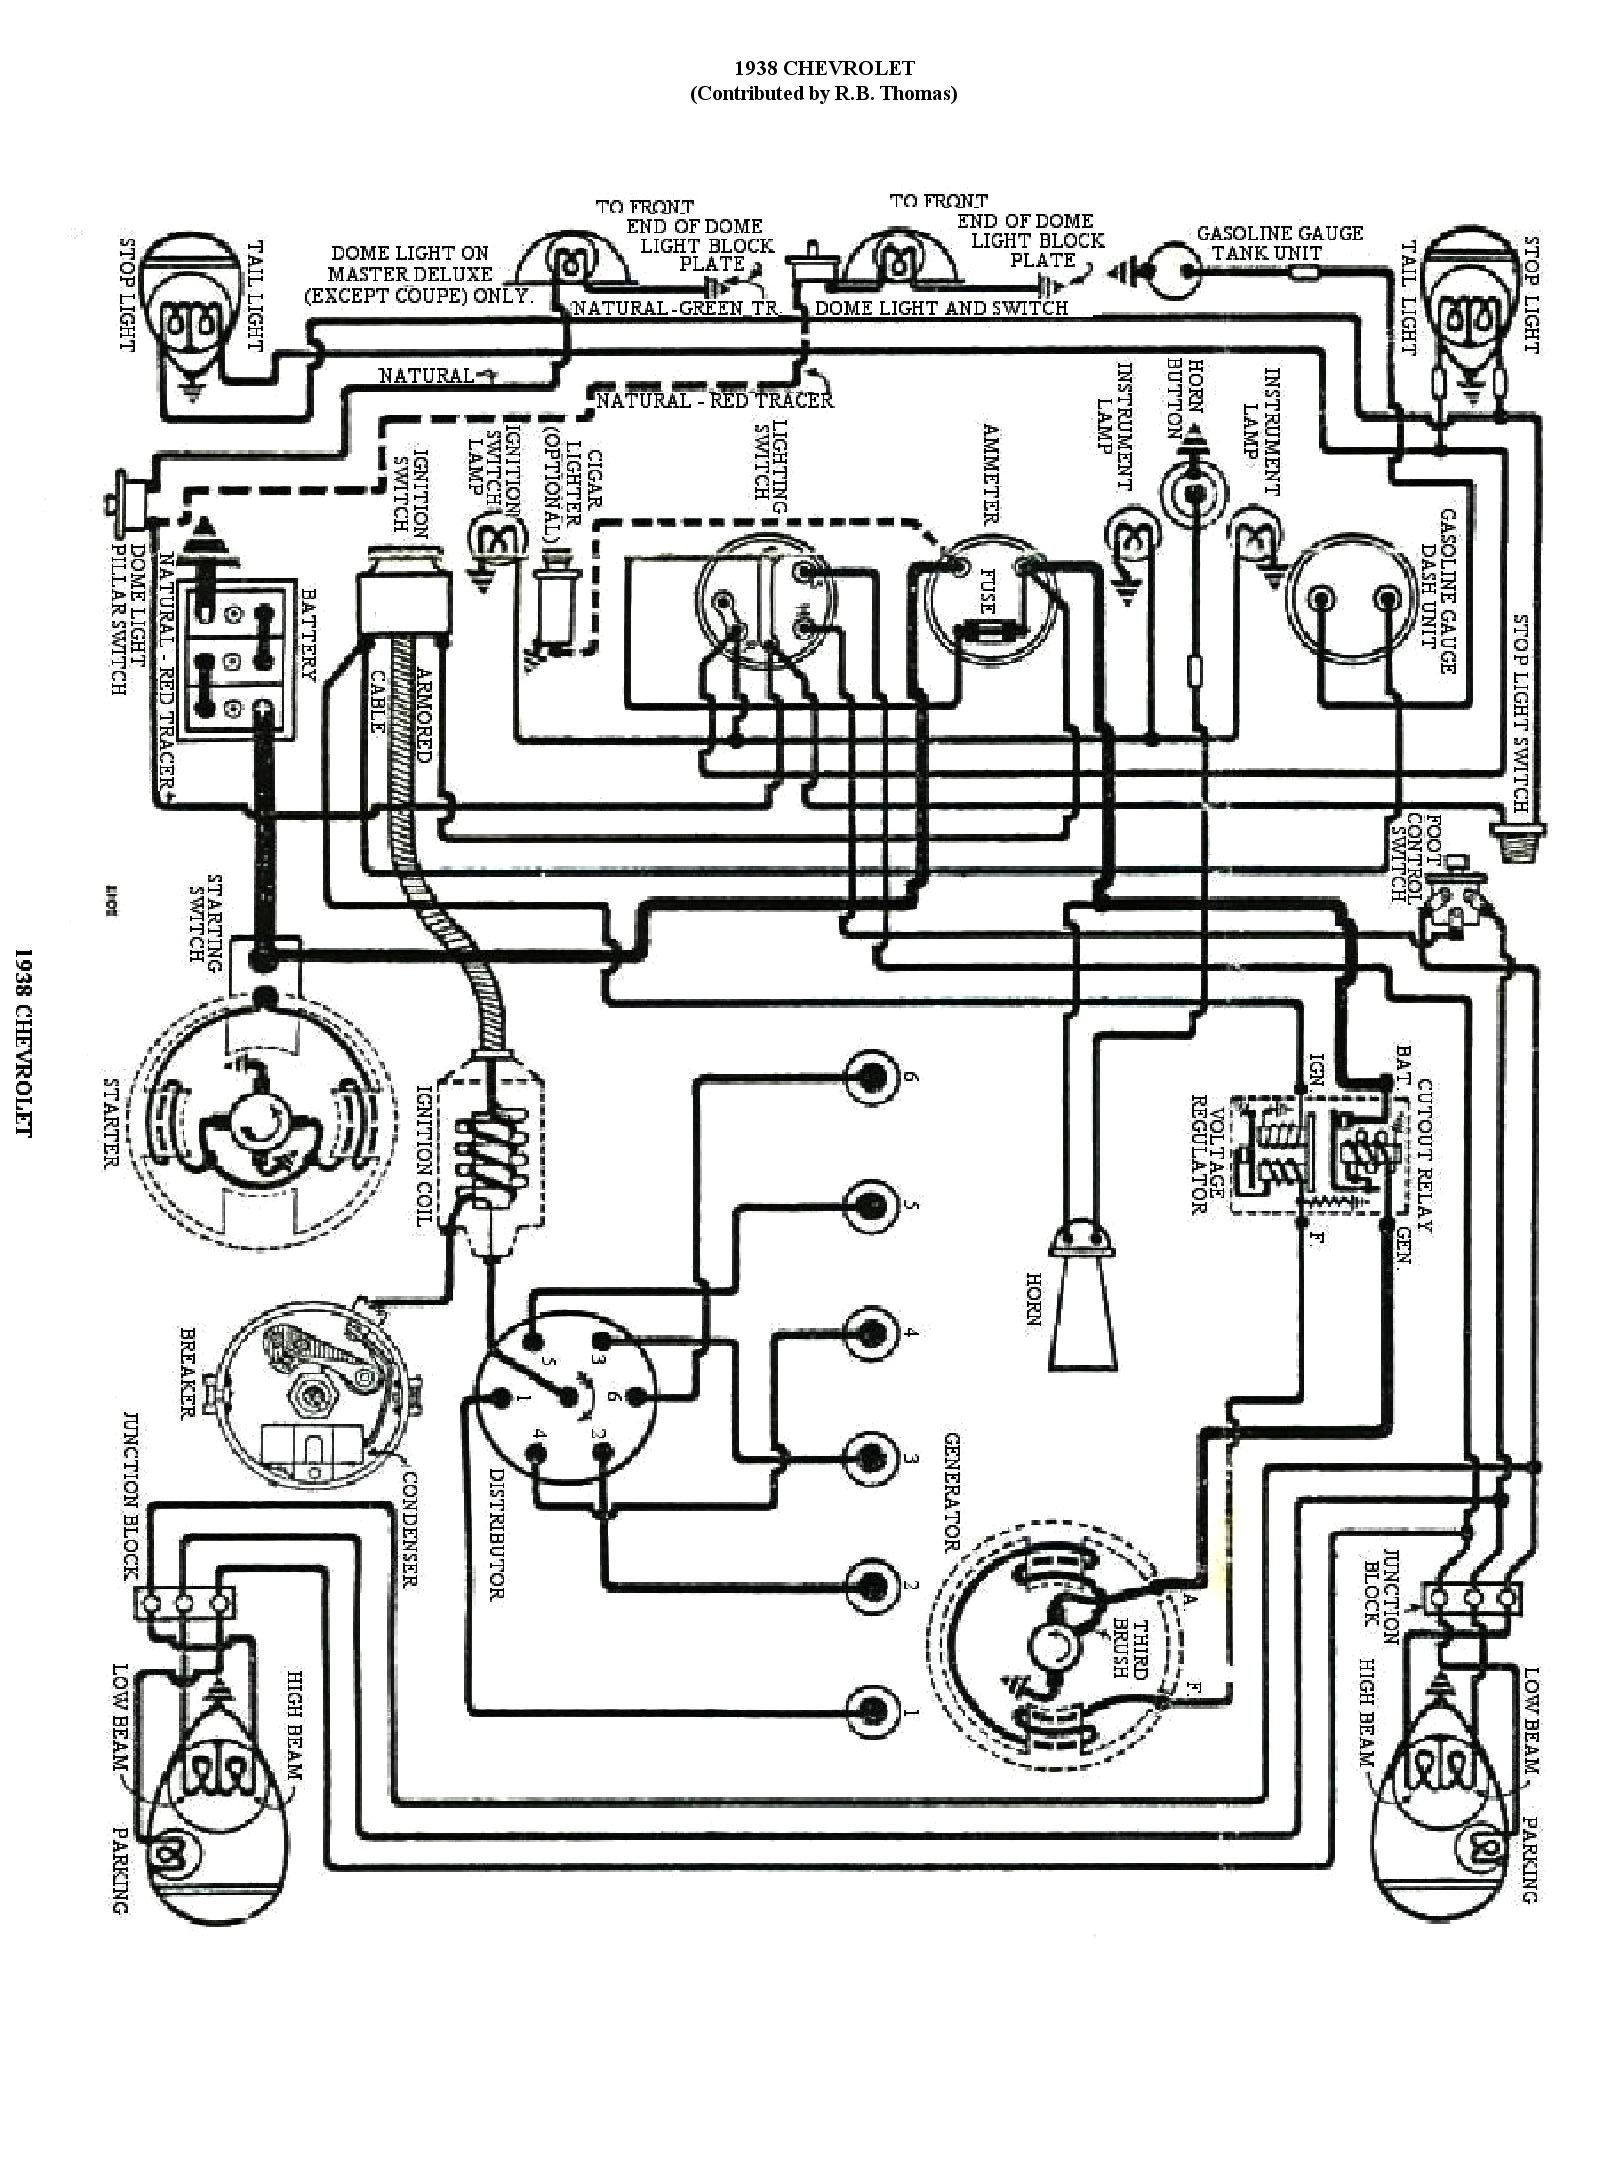 1951 mercury wiring diagram still six volts with a